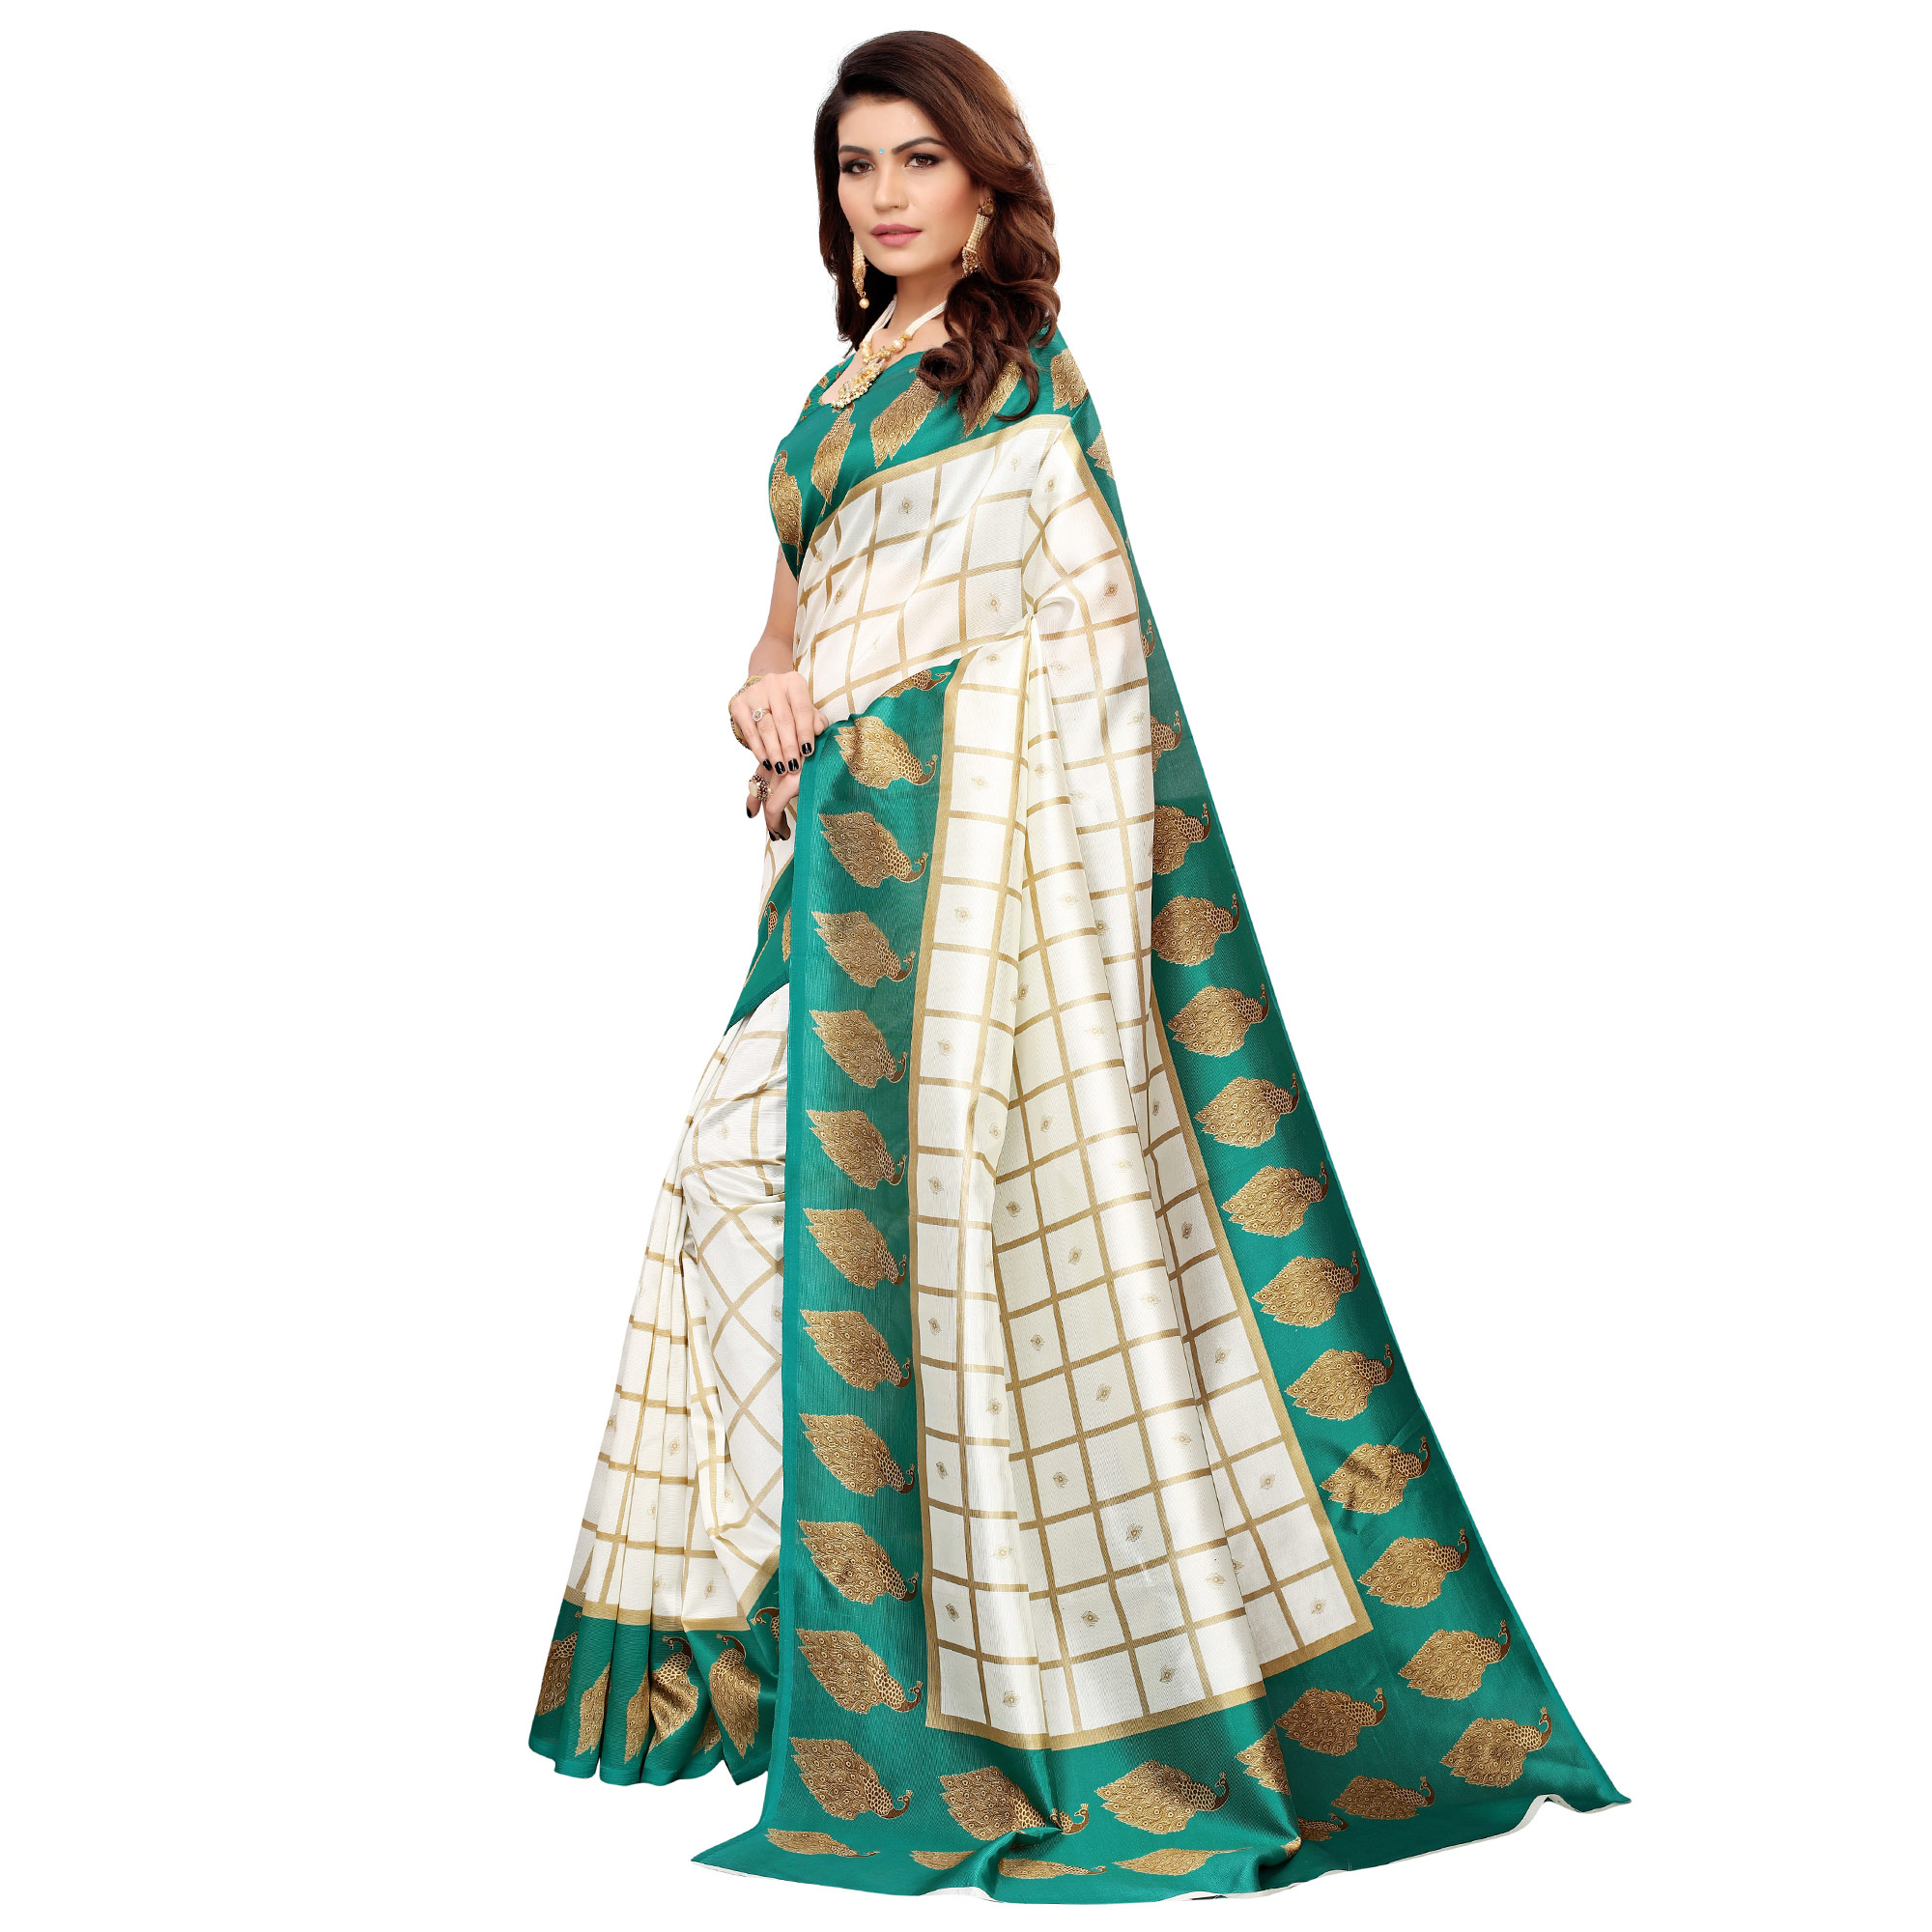 Radiant Off White-Turquoise Green Colored Casual Printed Mysore Silk Saree